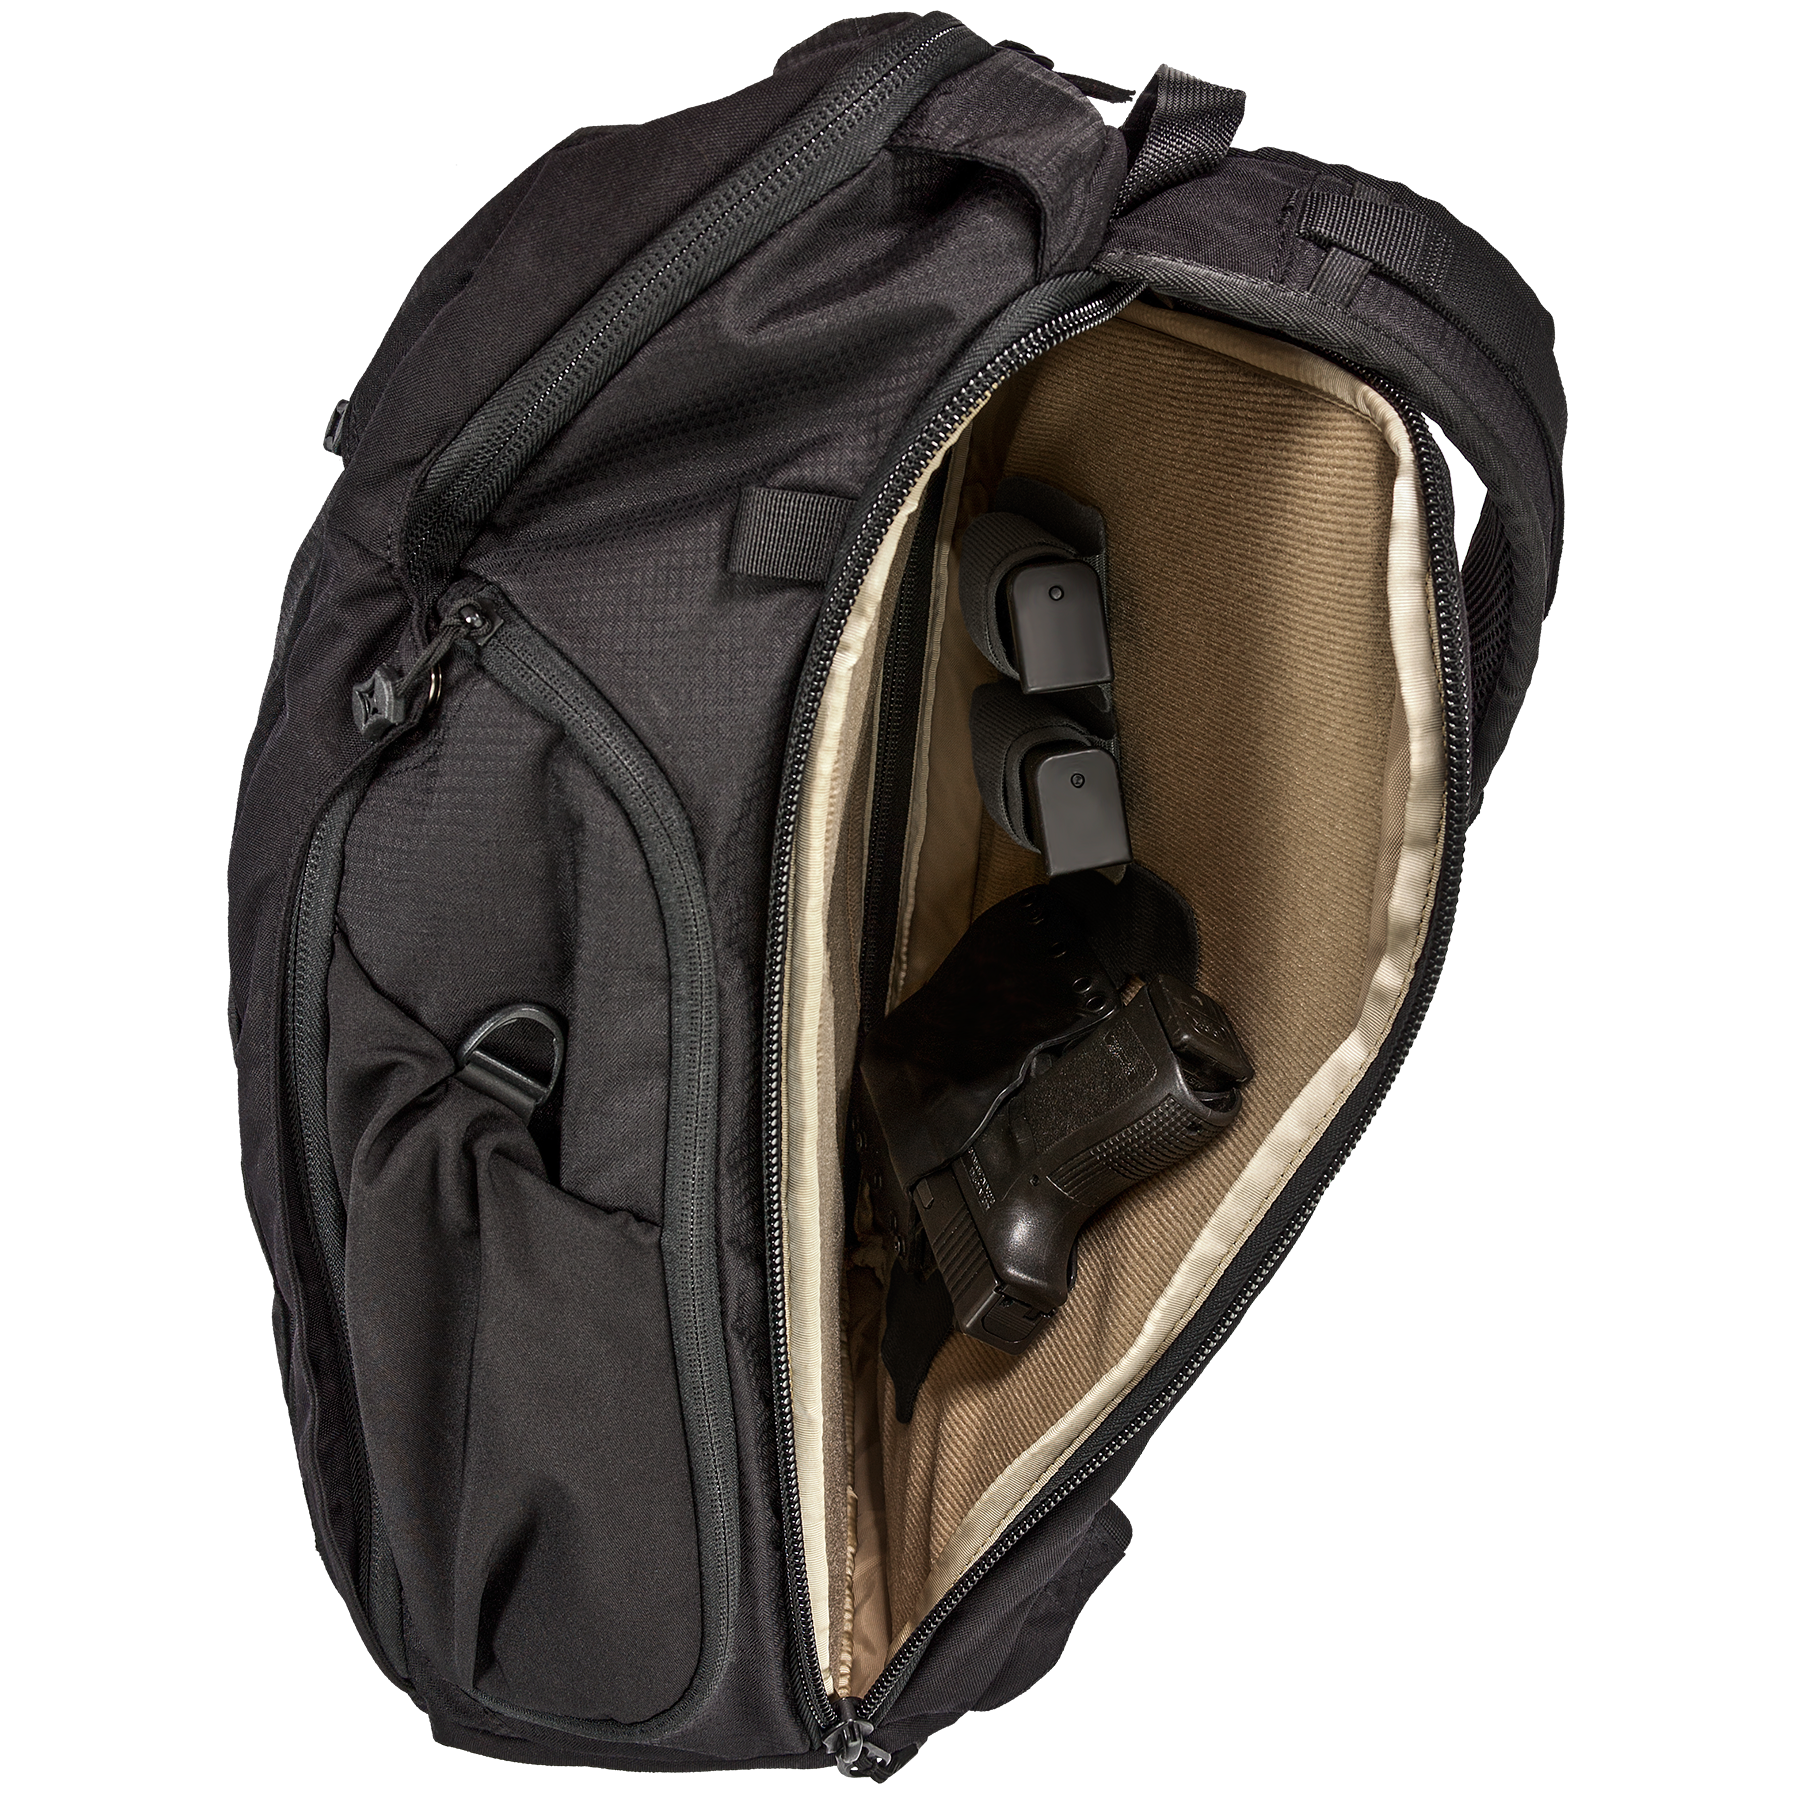 695a32c90e VERTX® GAMUT BACKPACK– Concealed Carry Save those thumbs  amp  bucks w  free